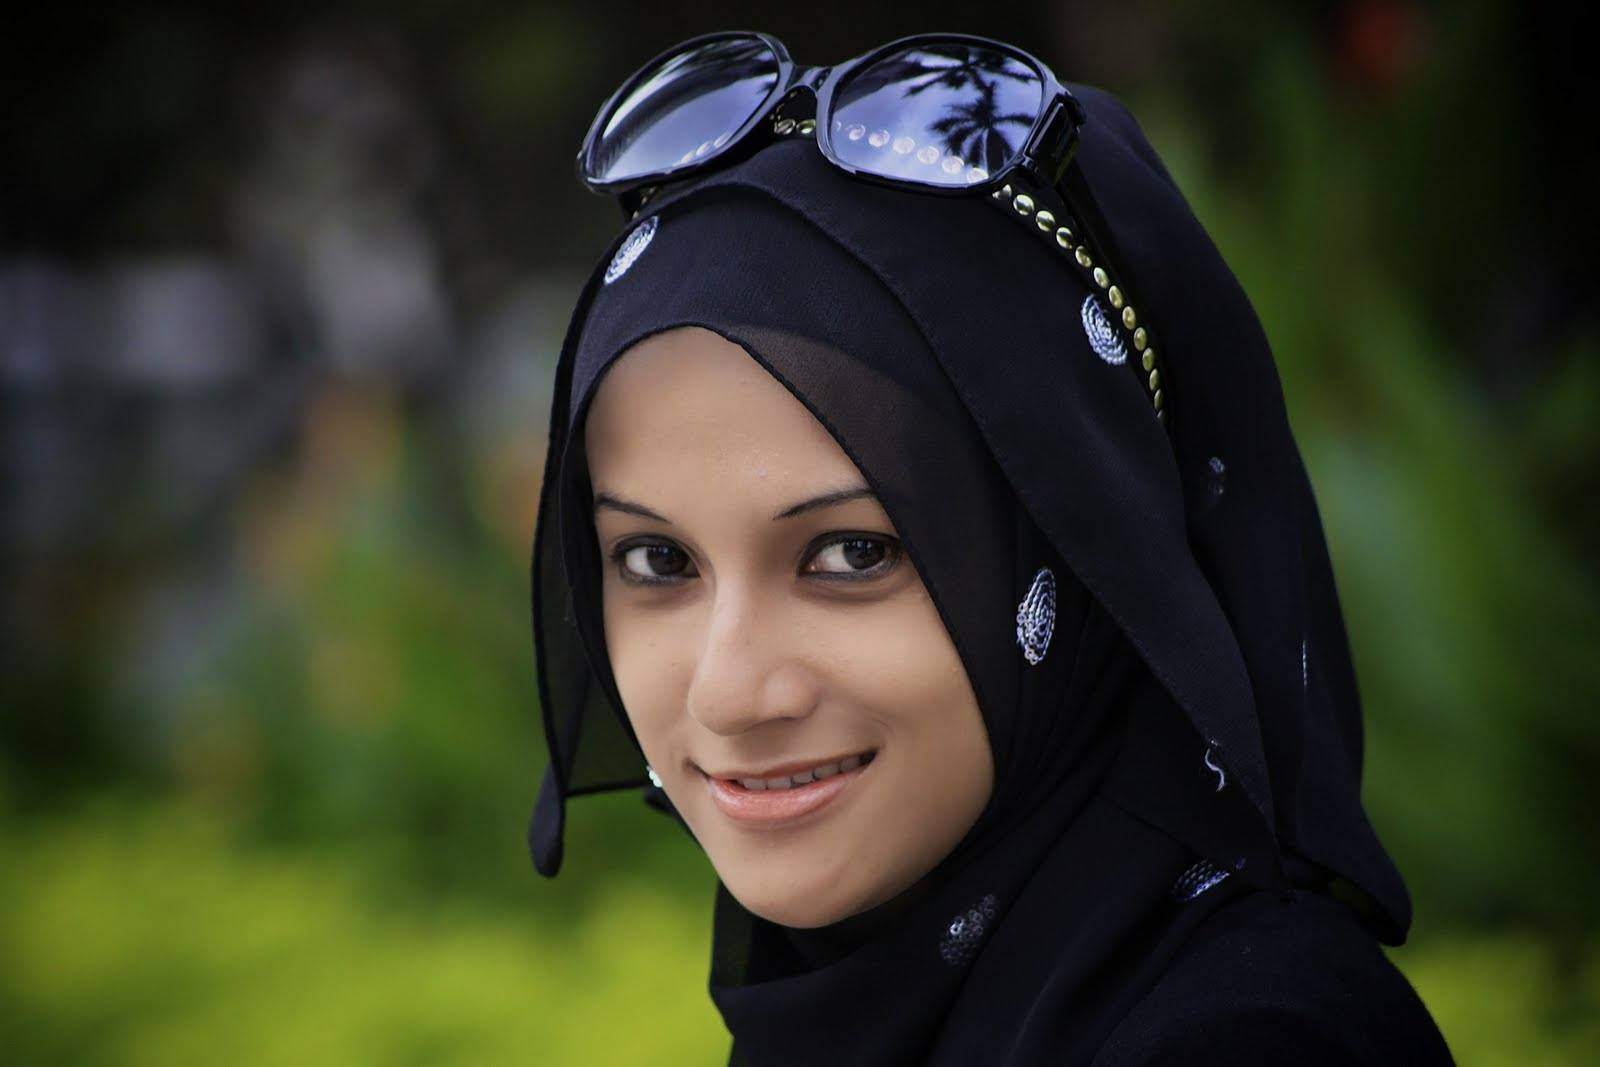 south wellfleet muslim girl personals Single muslim women on dating:  there was the muslim dating event at excel where,  girls tend to find a middle path about their identity.